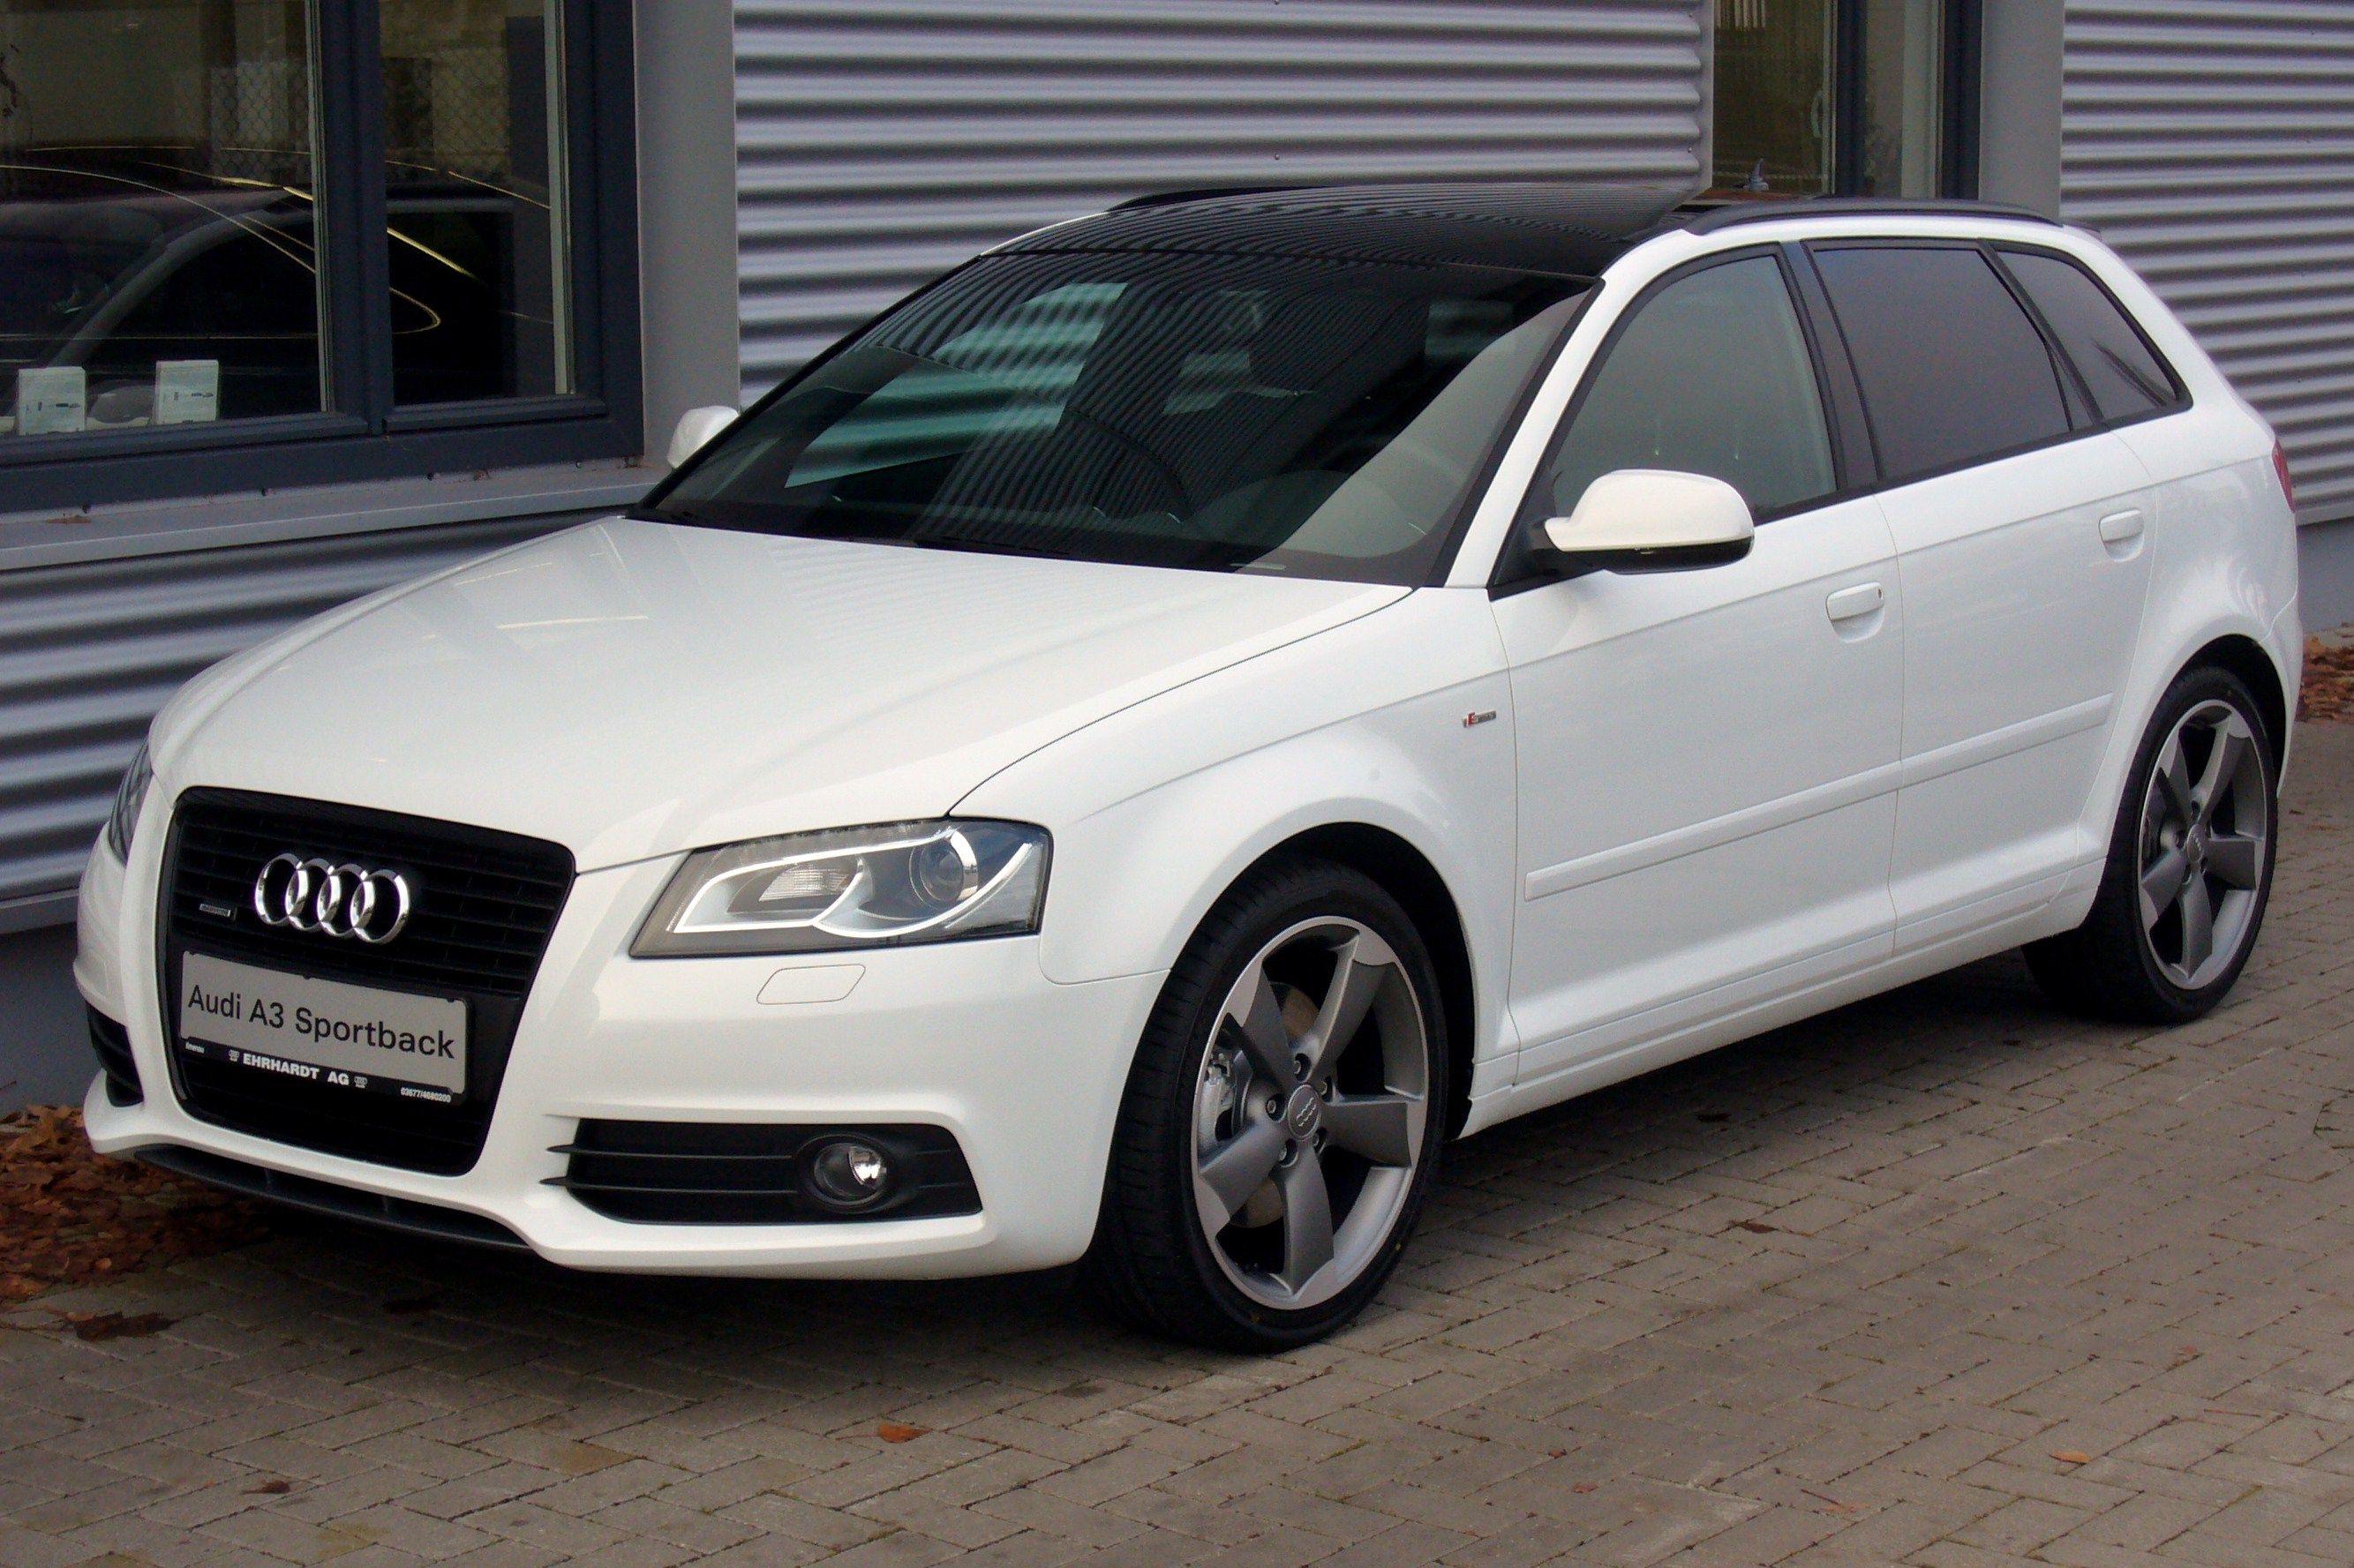 Sherman Mcniel's blog: Audi A3 2.0 TDI Review